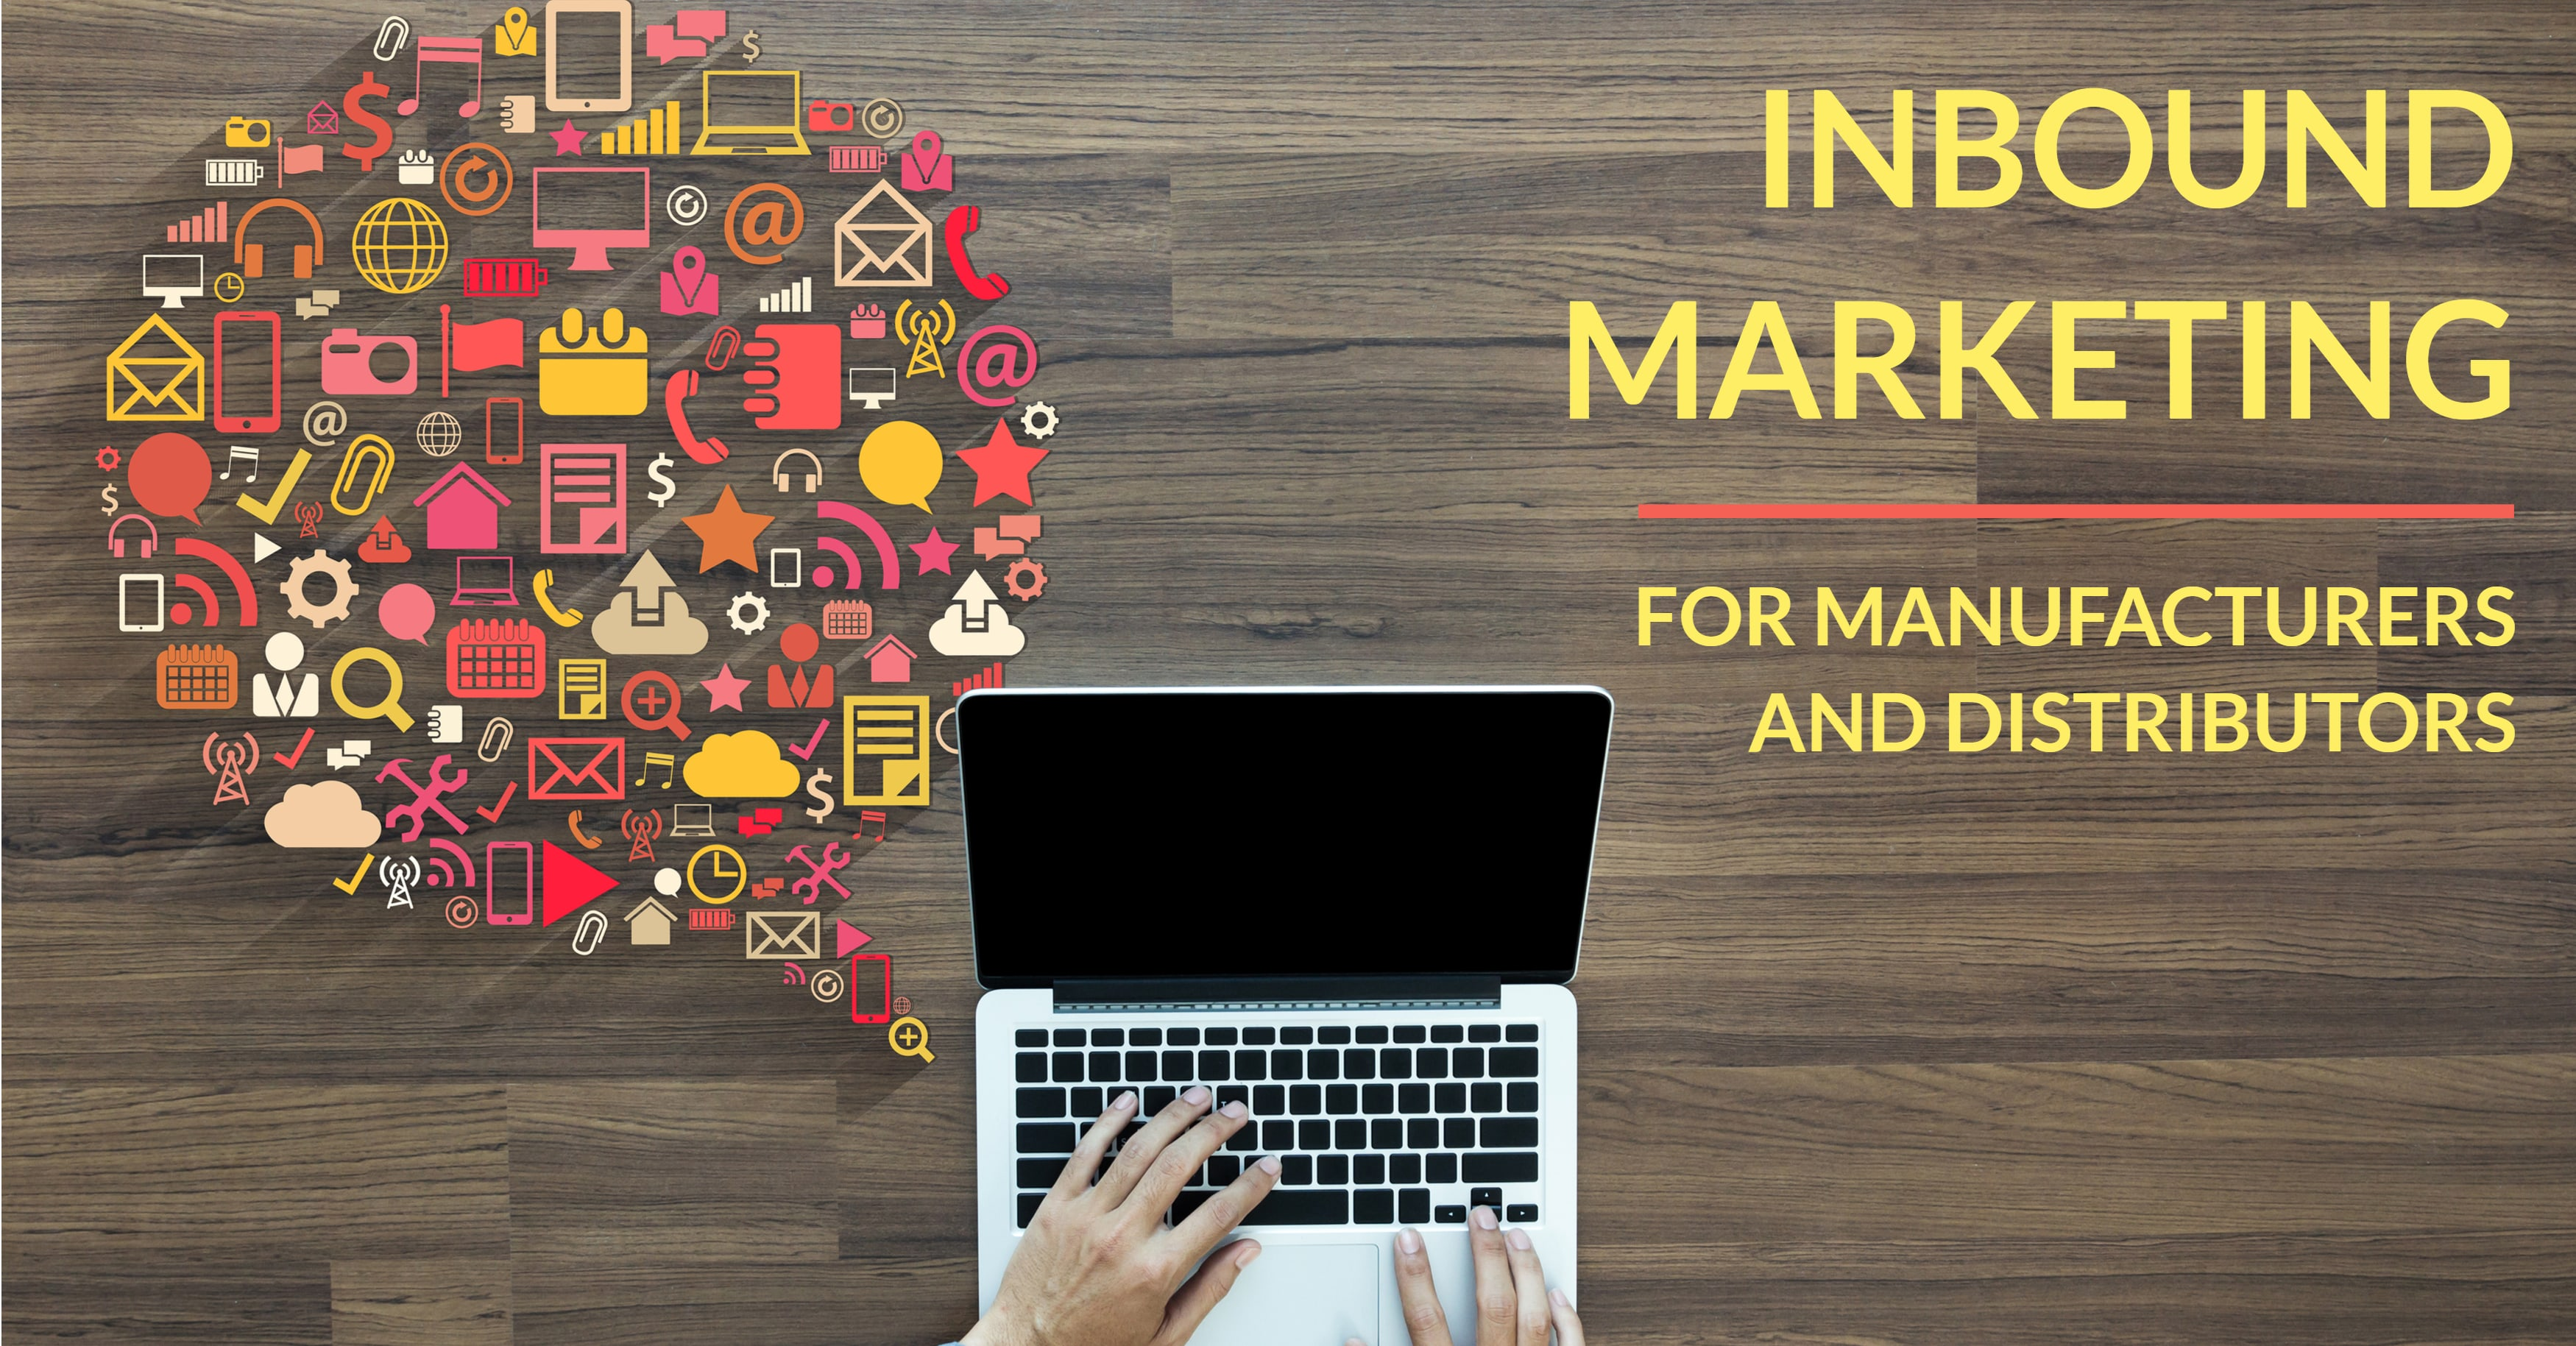 5 Inbound Marketing Tips for Manufacturers and Distributors